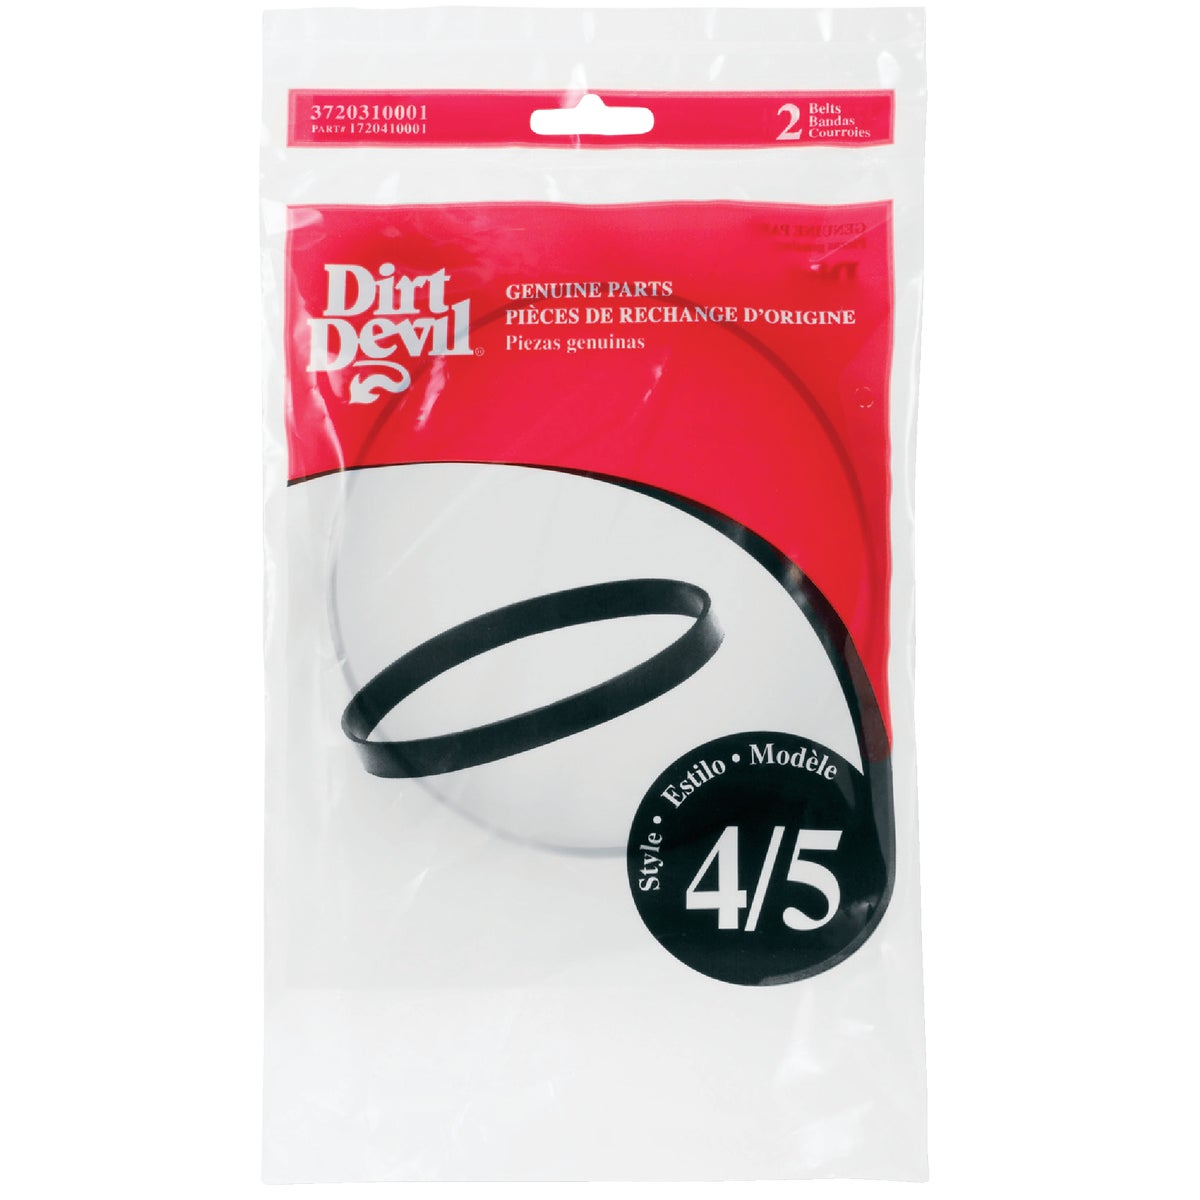 STYLE 4/5 VAC CLNR BELT - 3-720310-001 by Royal Appliance